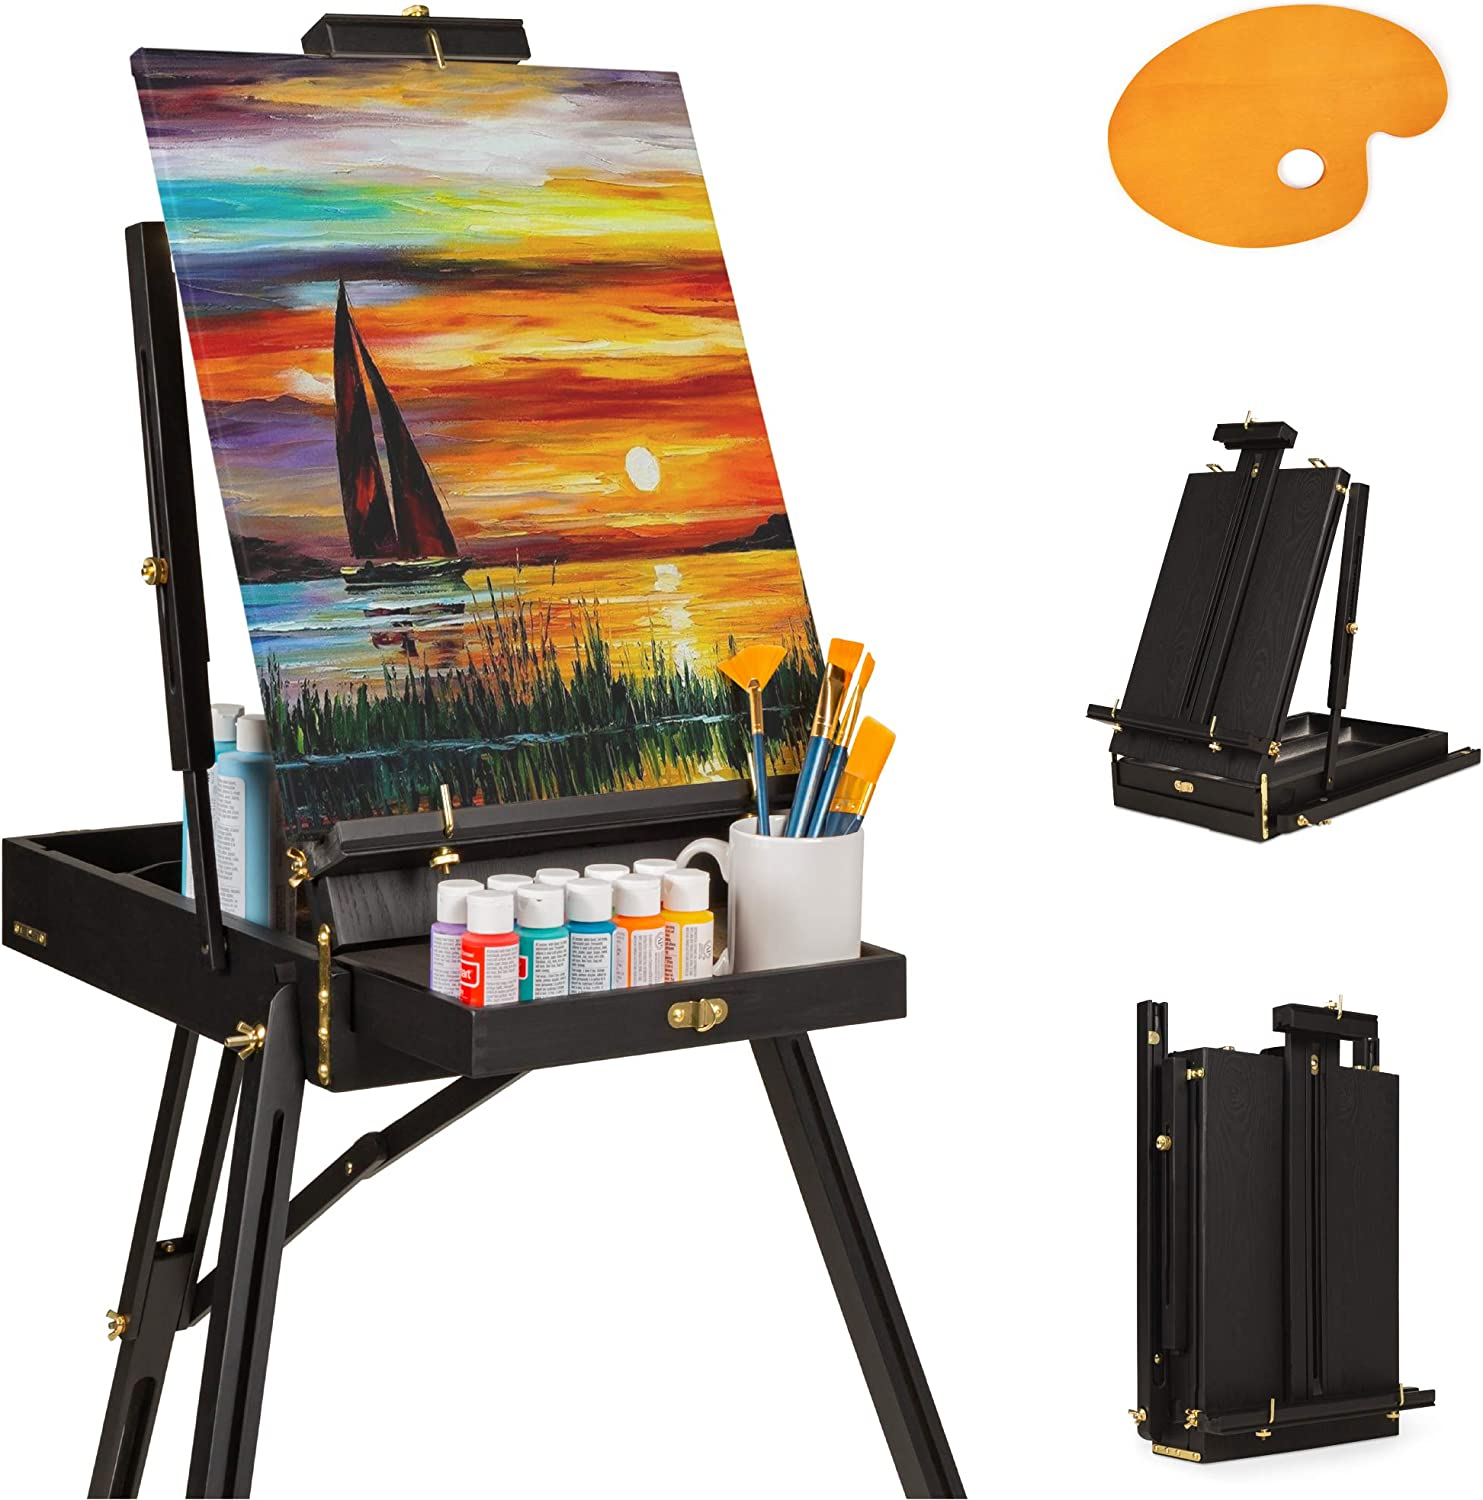 Best Choice Products Portable Wooden Folding French Easel Adjustable Sketch Box Artist Tripod For Painting Drawing Sketching W Drawer Pallet Handle Black Furniture Decor